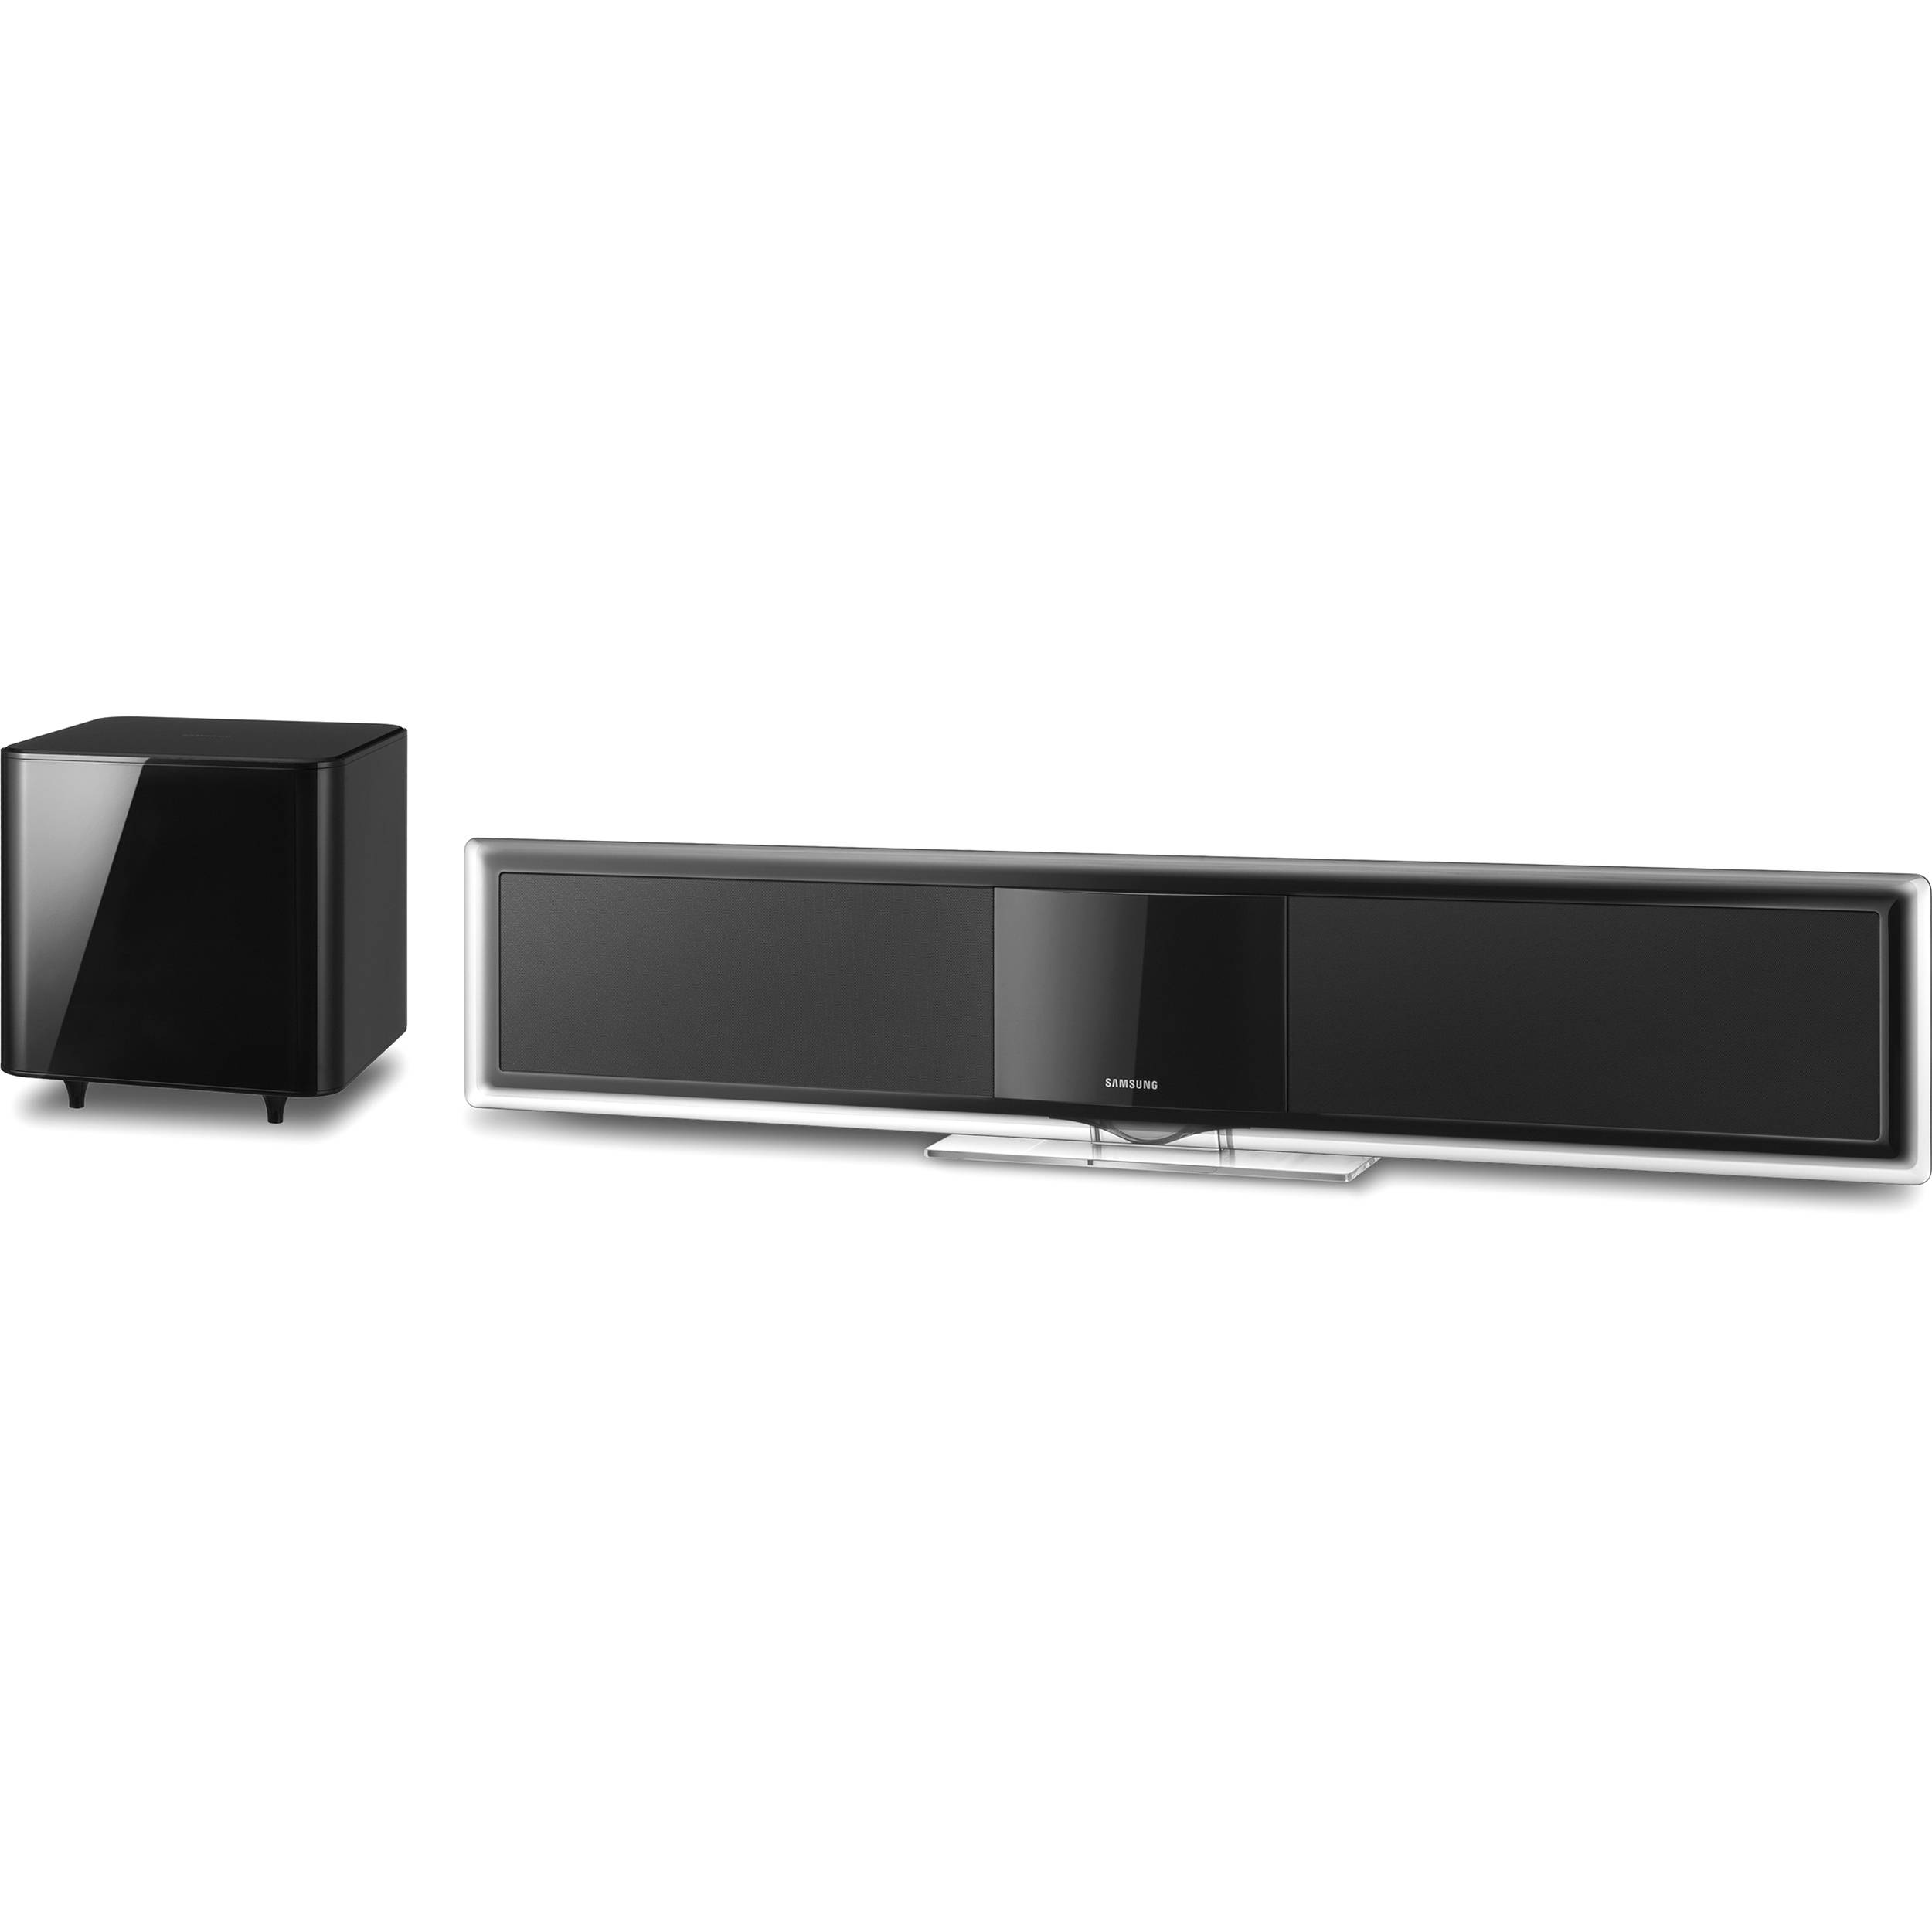 Samsung Ht Bd8200t 2 1 Channel Blu Ray Sound Bar Home Theater System